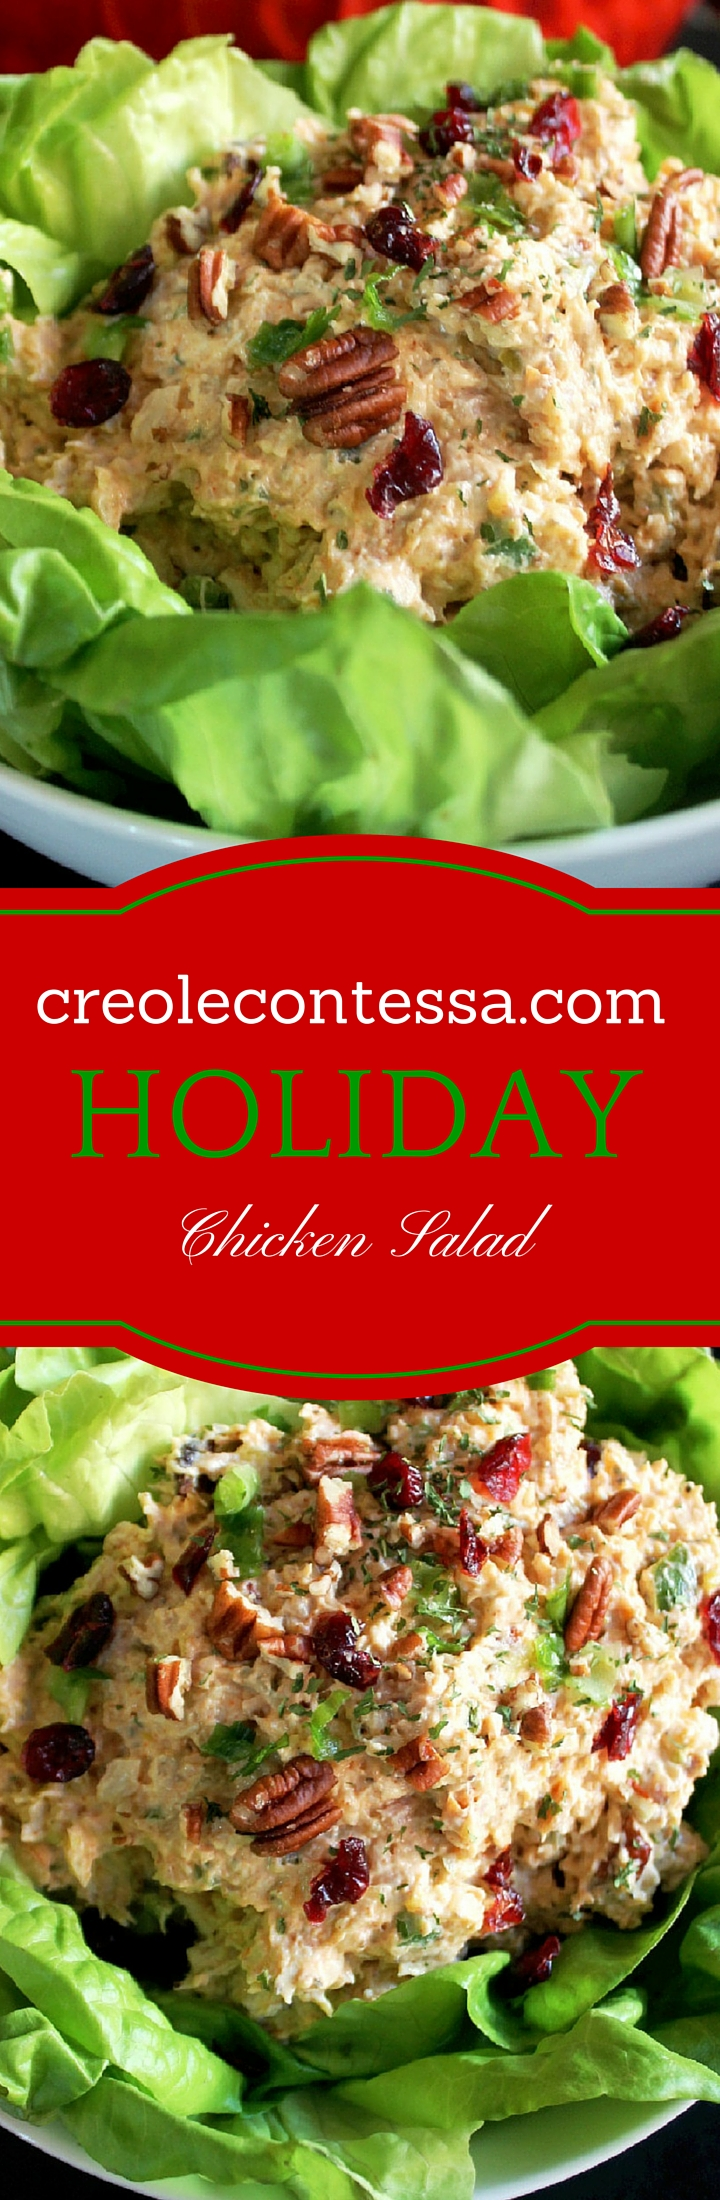 Holiday Chicken Salad Pecans & Cranberries-Creole Contessa